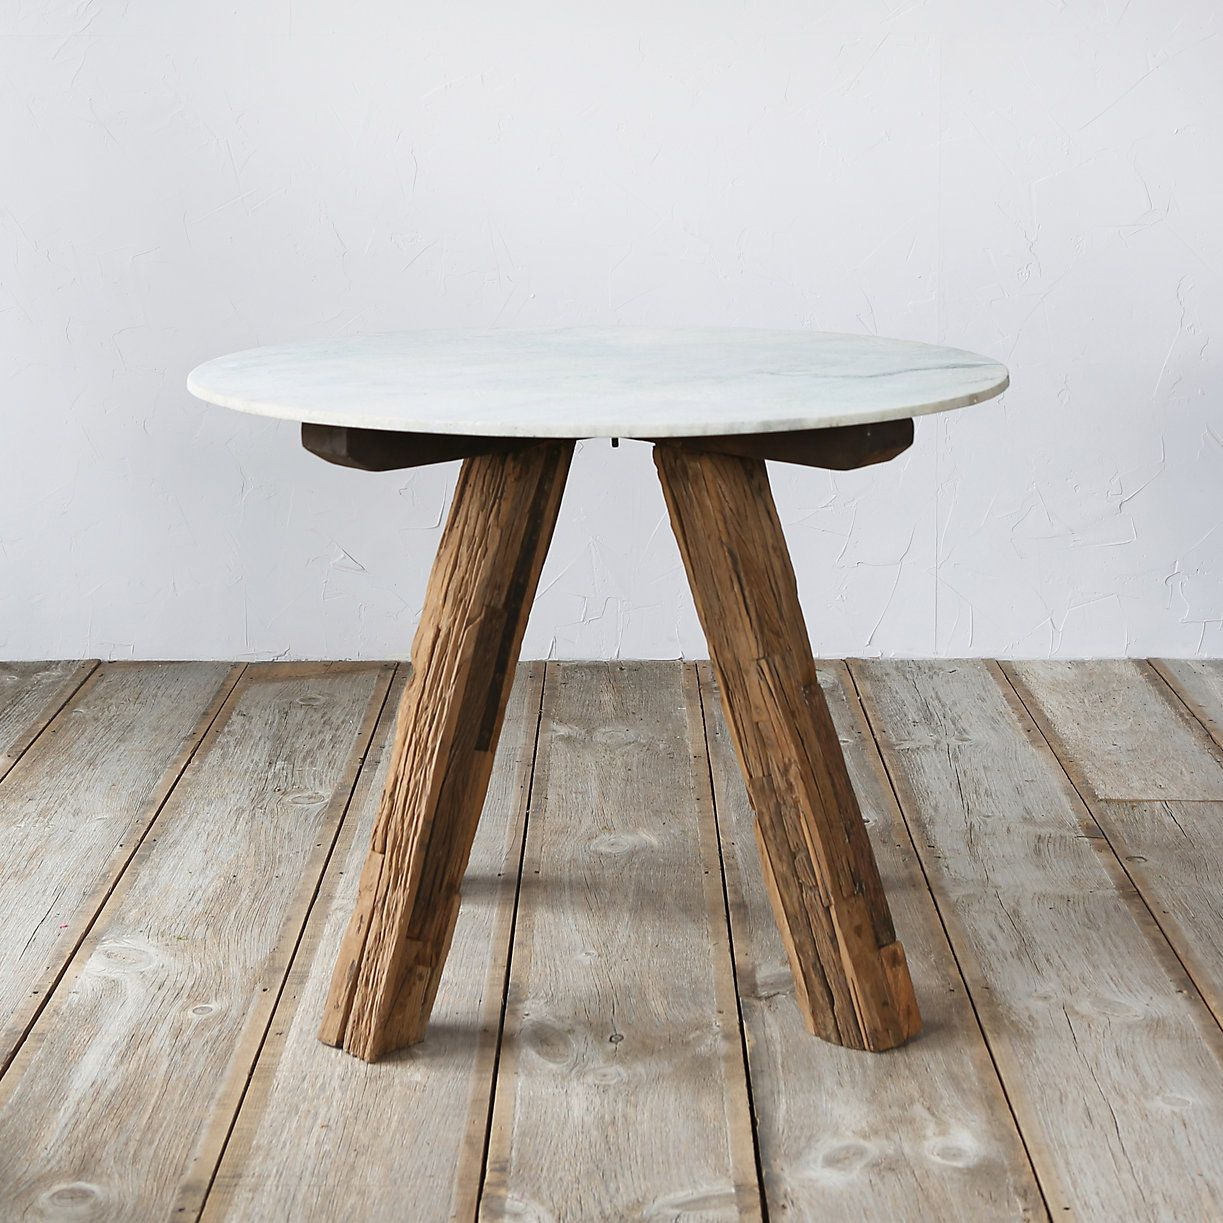 A Clean, Marble Top Pairs With Rustic Legs Of Recycled Mango Wood To Form  This